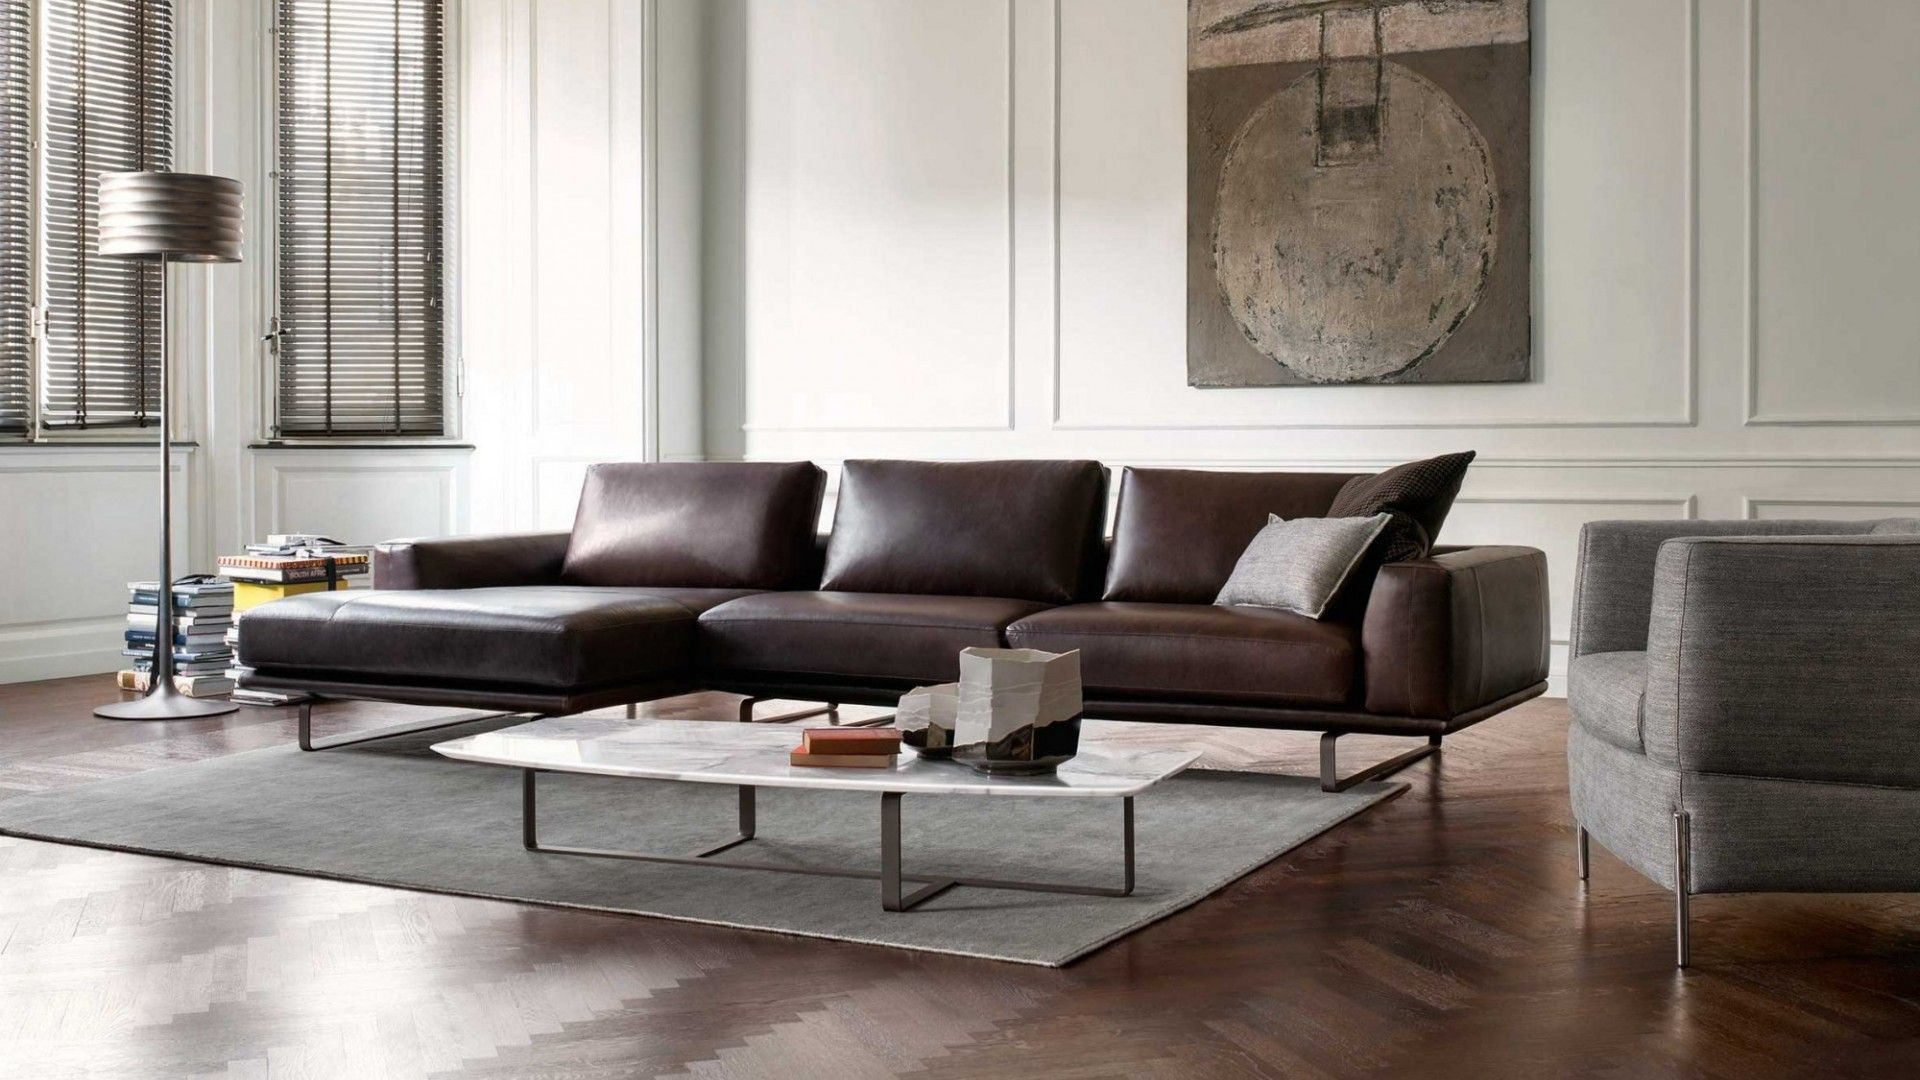 Volo is a compact sofa by natuzzi italia compact and comfortable it features relaxation system for headrest and footrest